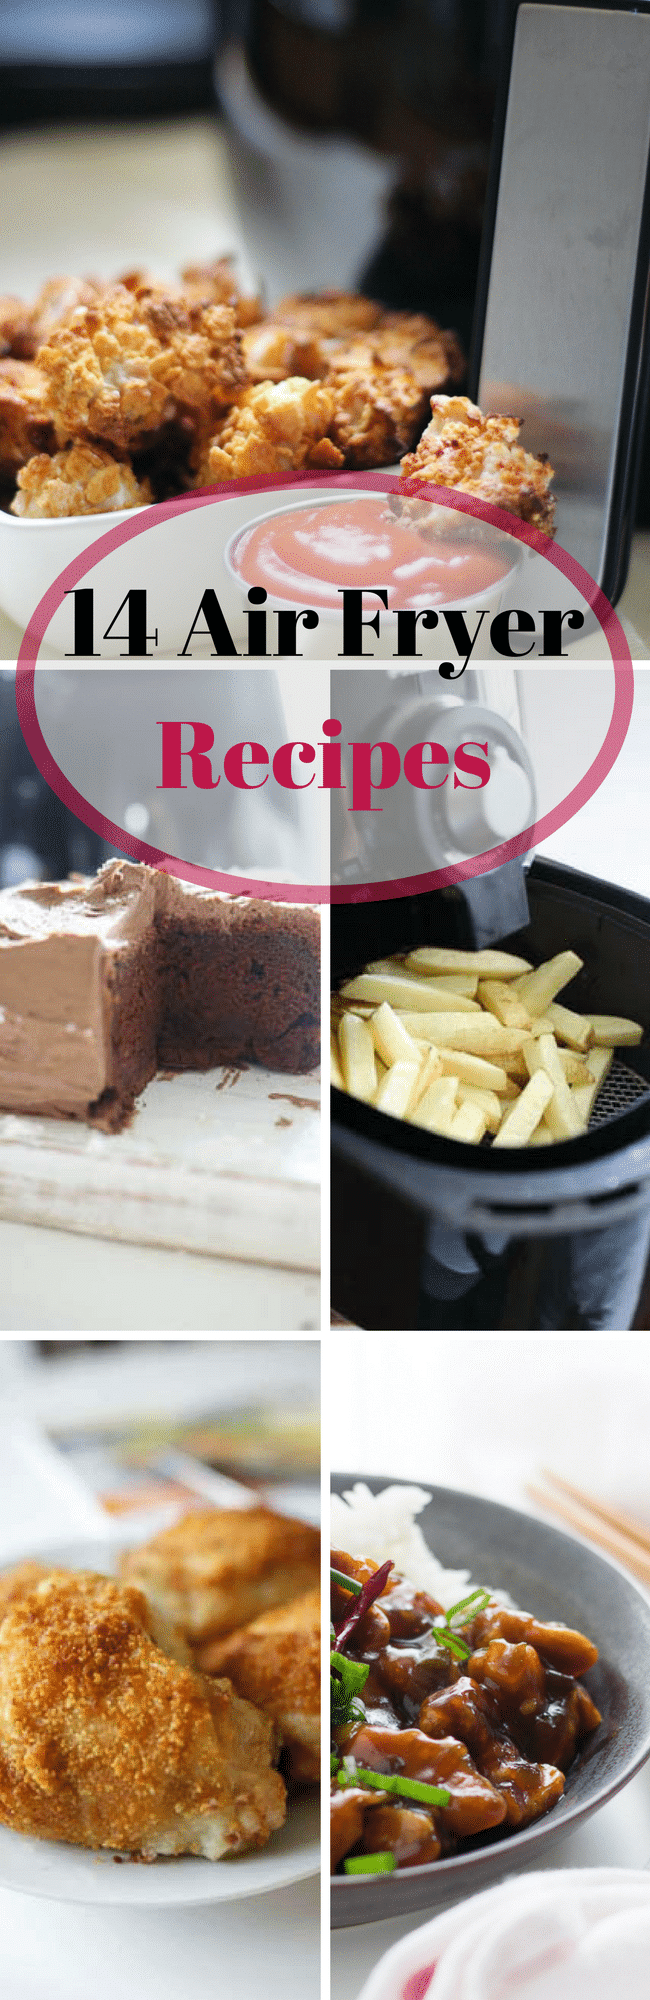 photo of air fryer recipes and text that says 14 air fryer recipes